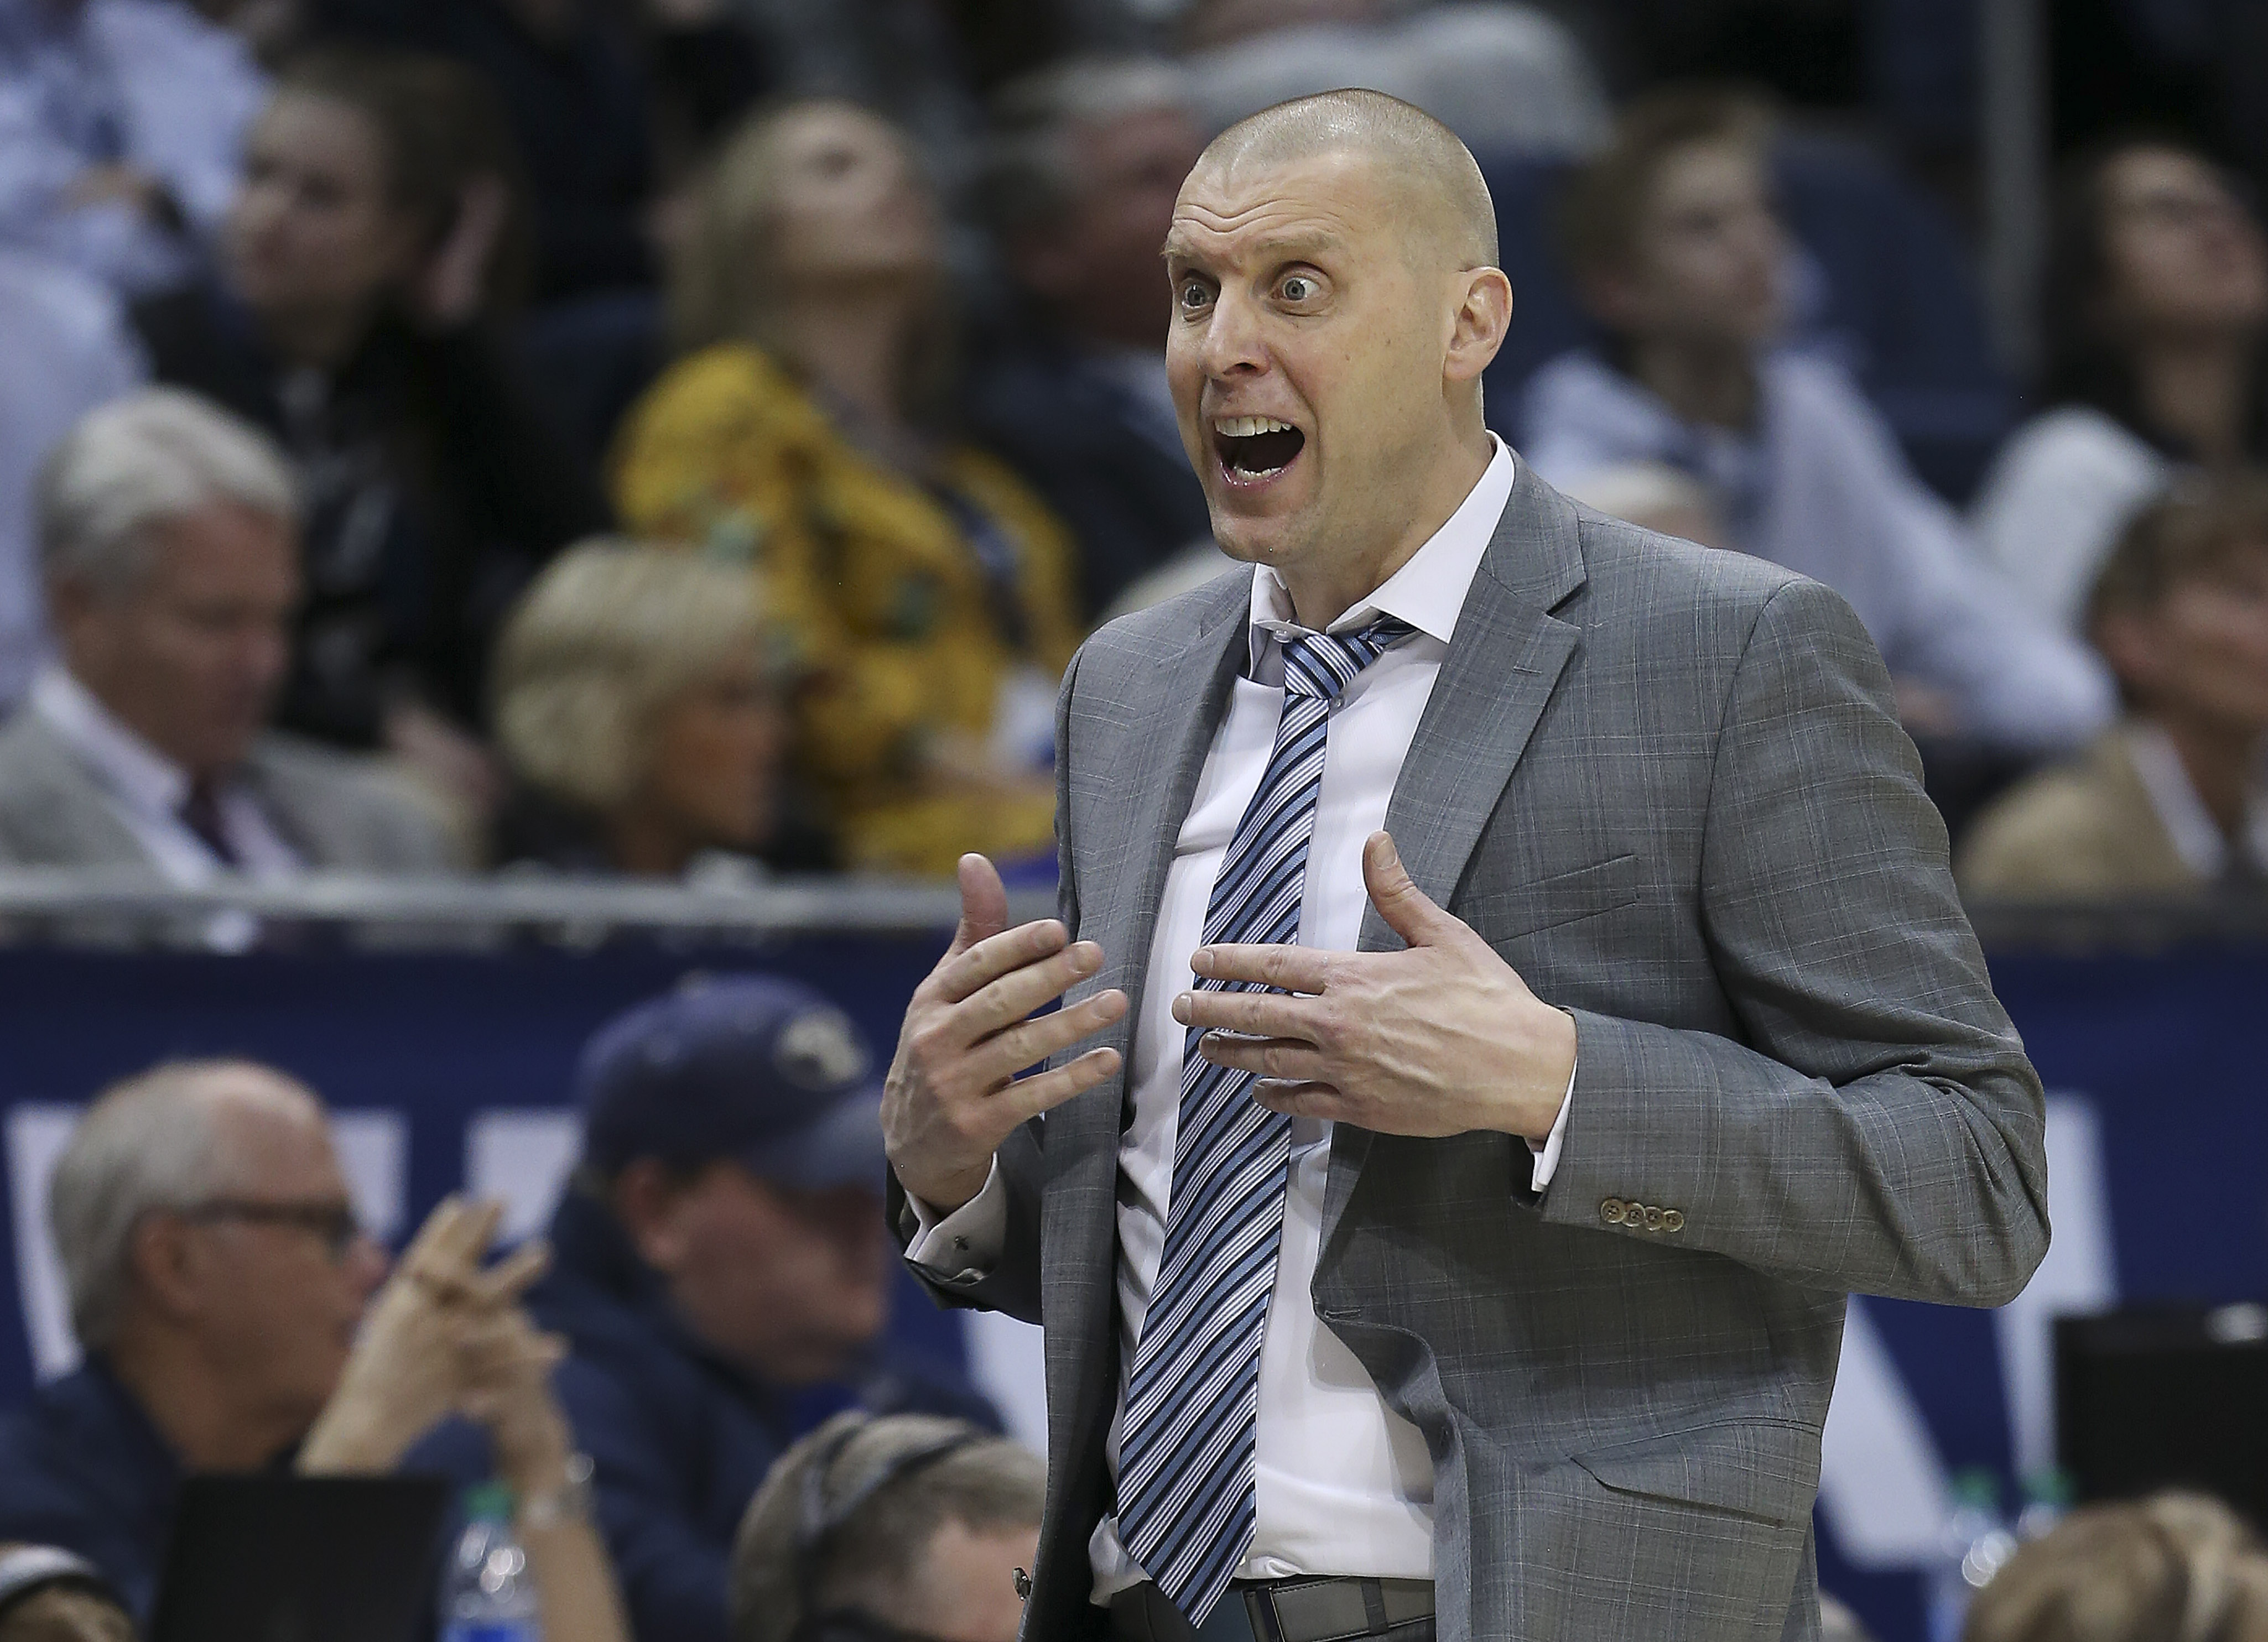 Brigham Young Cougars head coach Mark Pope protests a call in a game against the San Diego Toreros in Provo on Thursday, Jan. 16, 2020. BYU won 93-70.